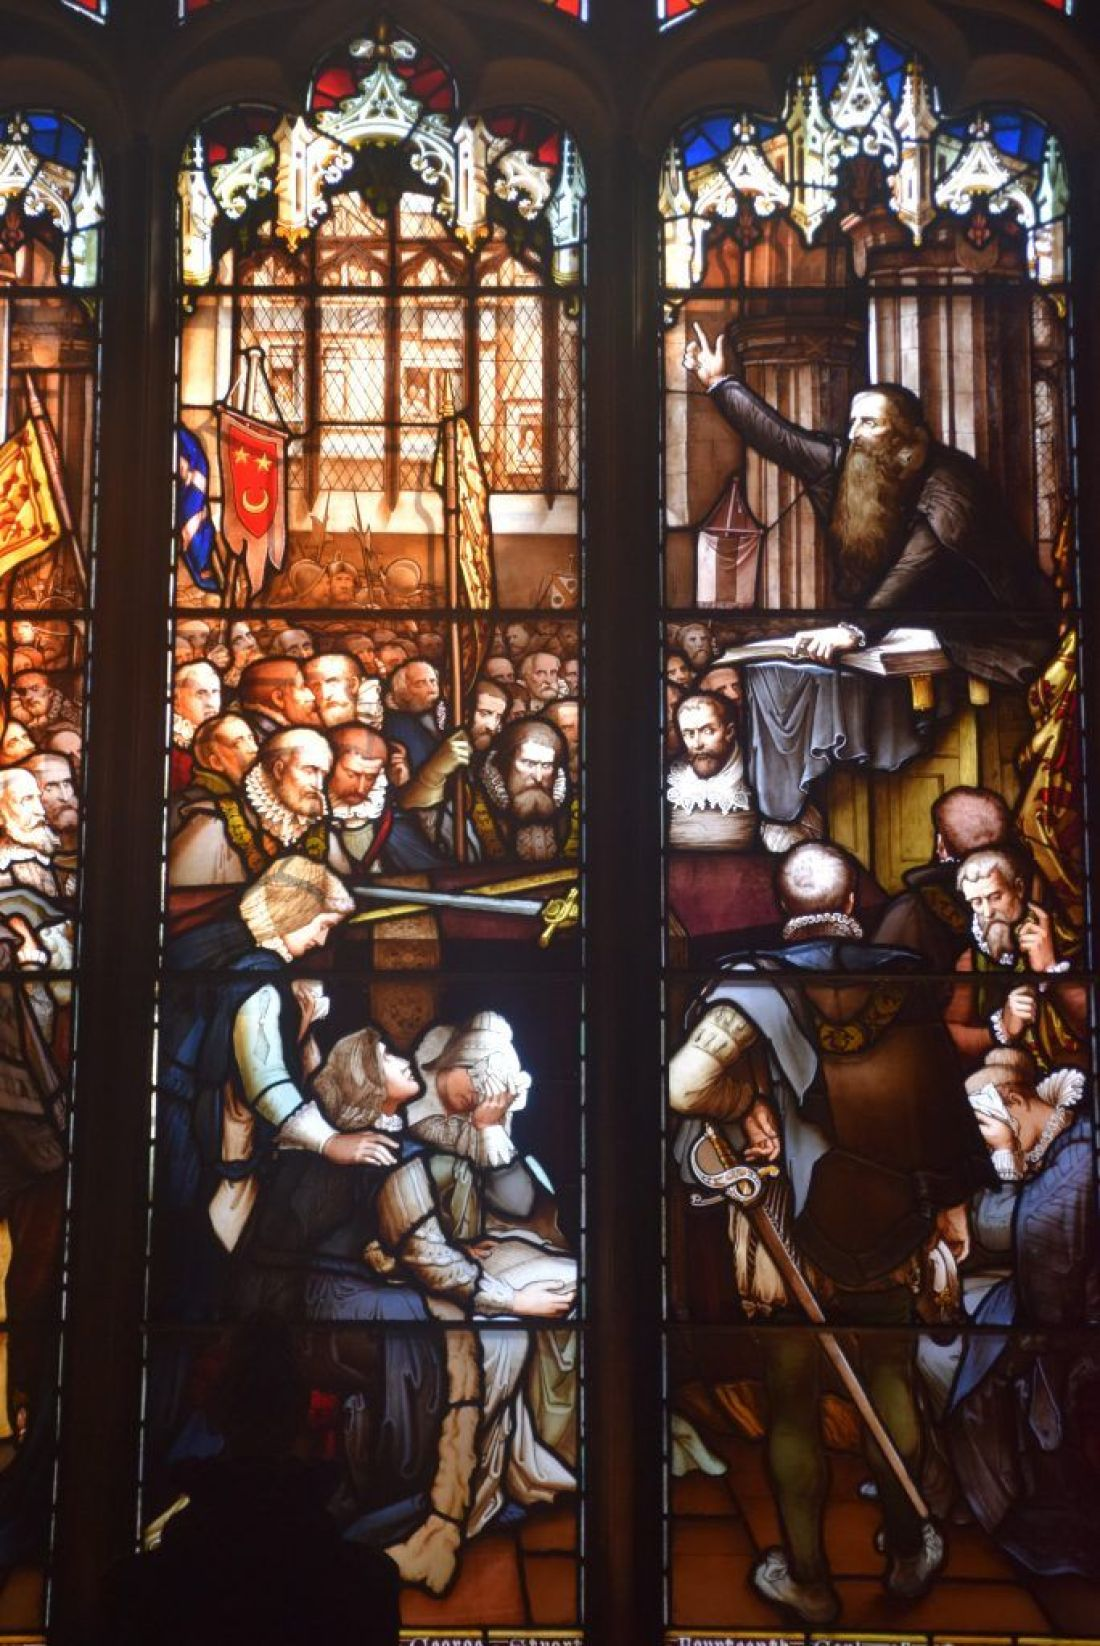 John Knox window, St Giles' Cathedral, Edinburgh, Scotland. It shows Knox delivering the funeral sermon of Regent Moray, who was assassinated by a supporter of Mary Queen of Scots.